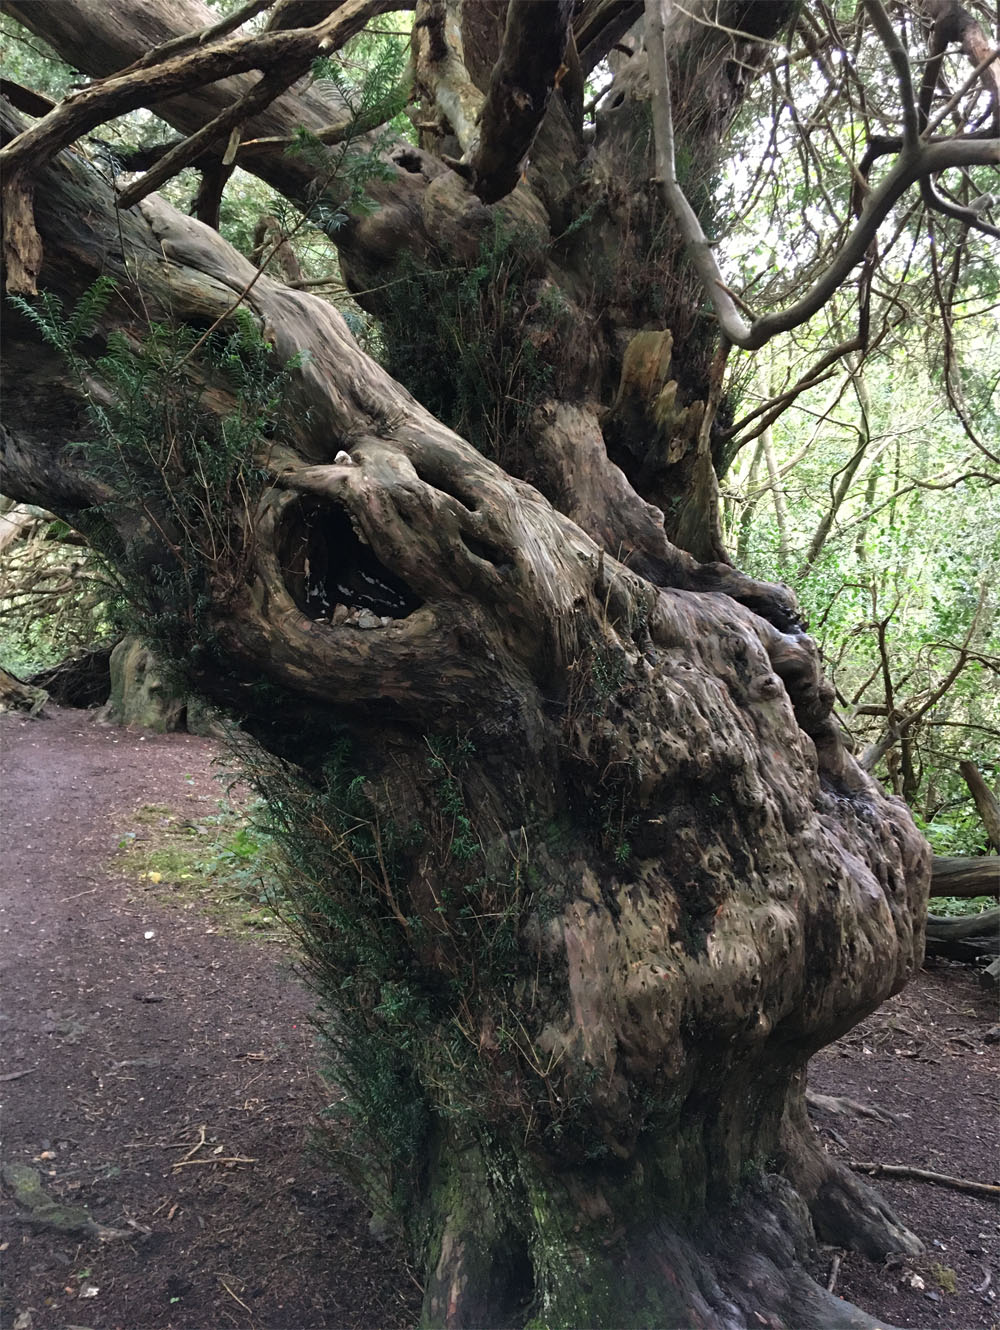 Yew forest3 Oct 20